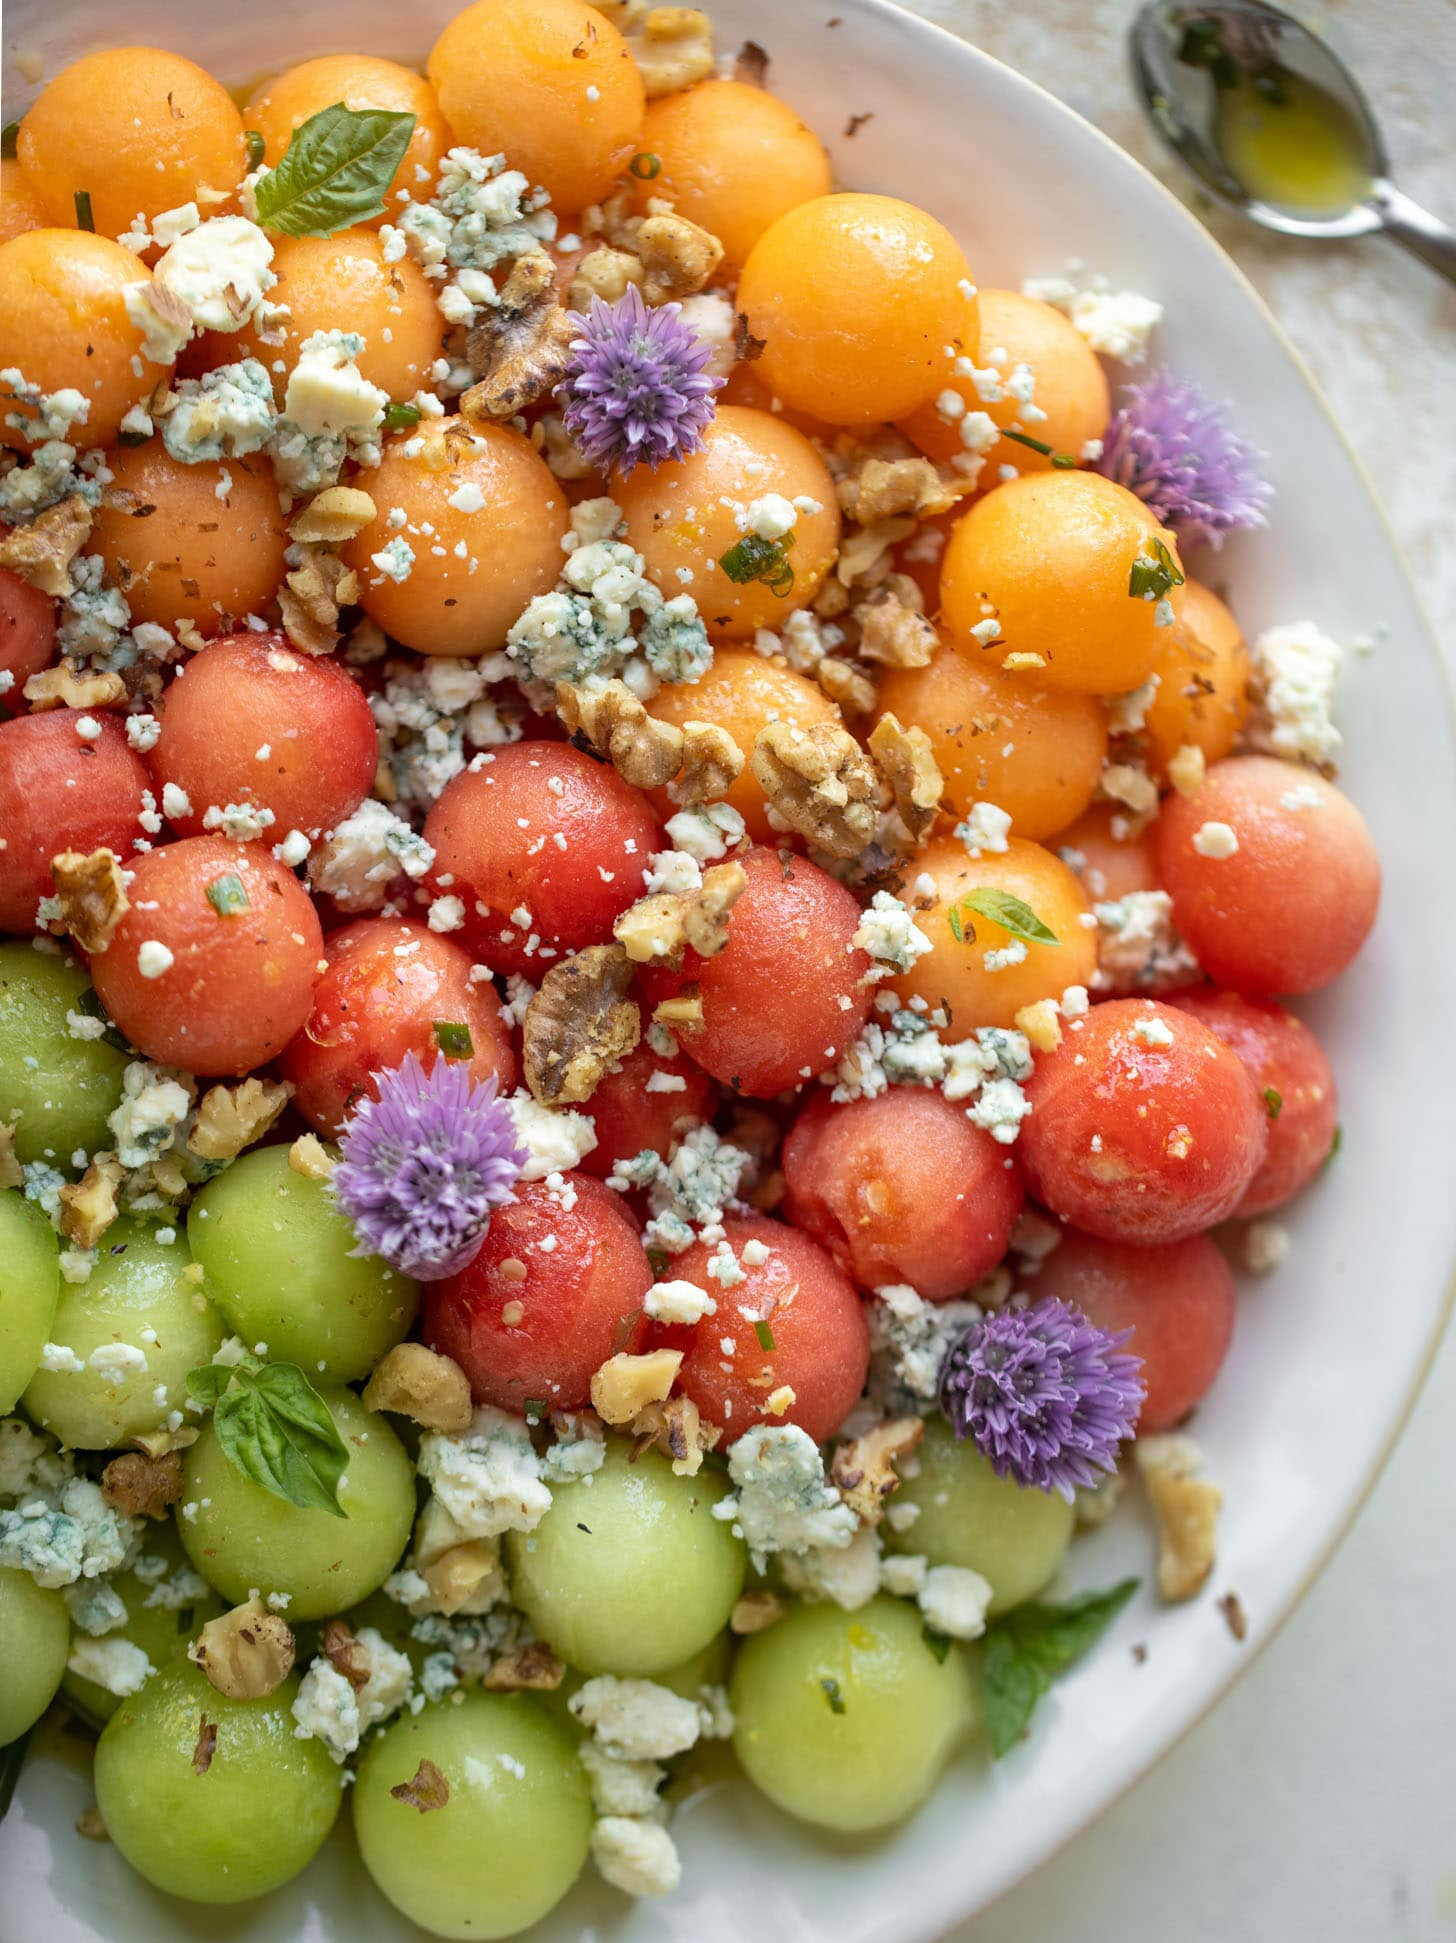 triple melon salad with blue cheese and walnuts